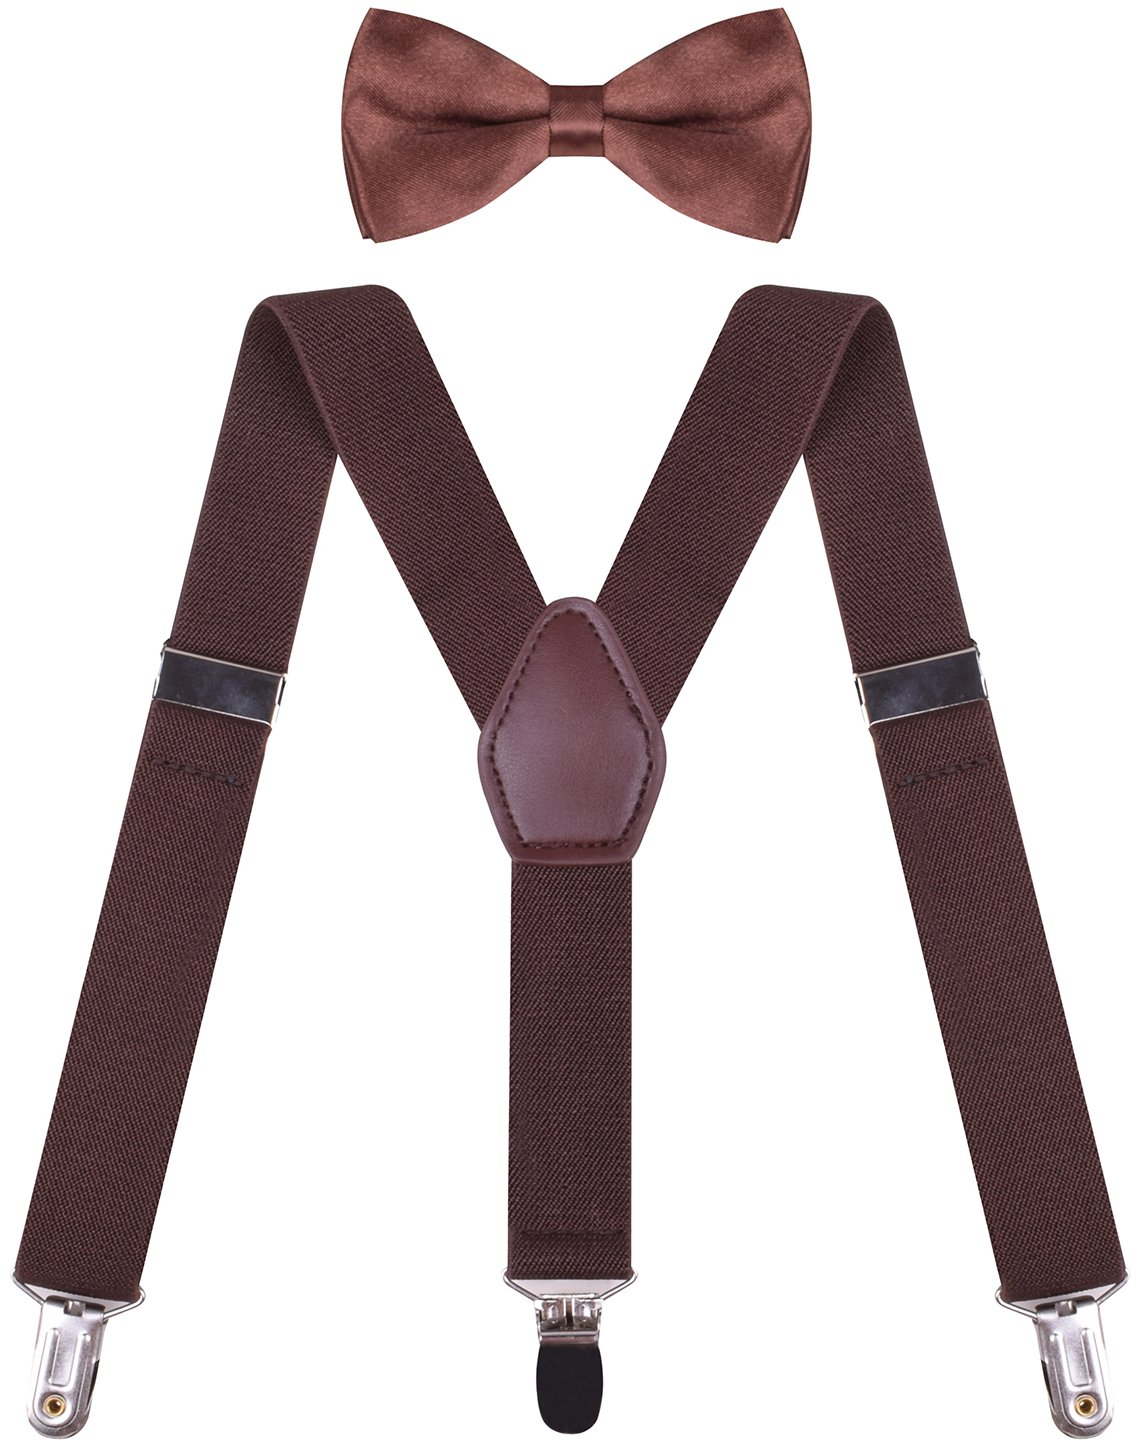 ORSKY Boys's Suspender with Bow Tie Set Adjustable Y Back Coffee